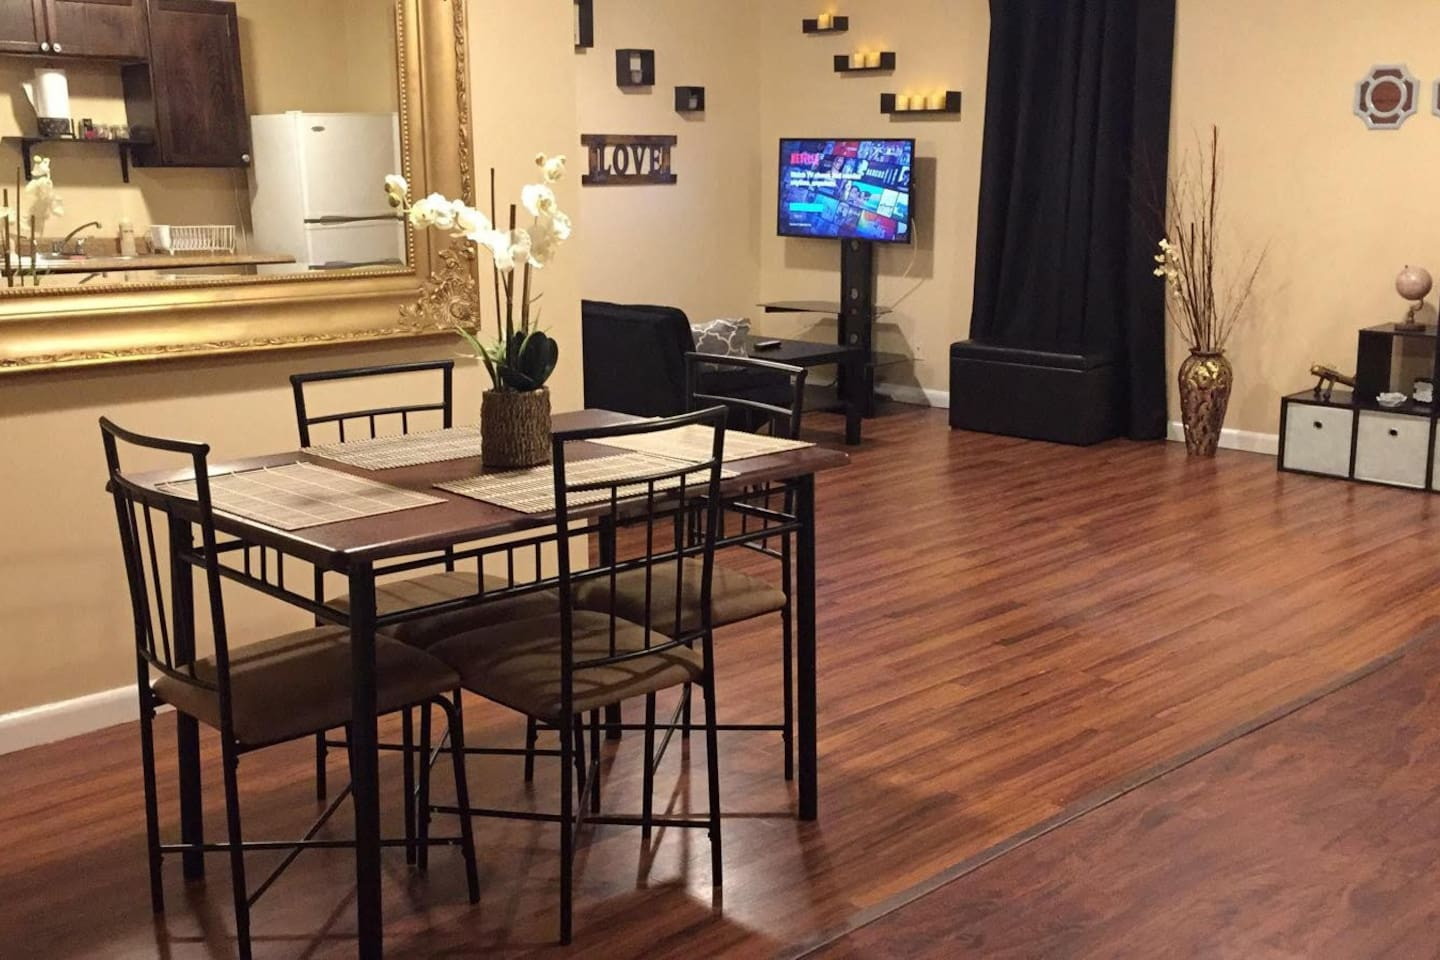 Newly Renovated Studio Best Location On Fmb In Fort Myers Beach Florida United States